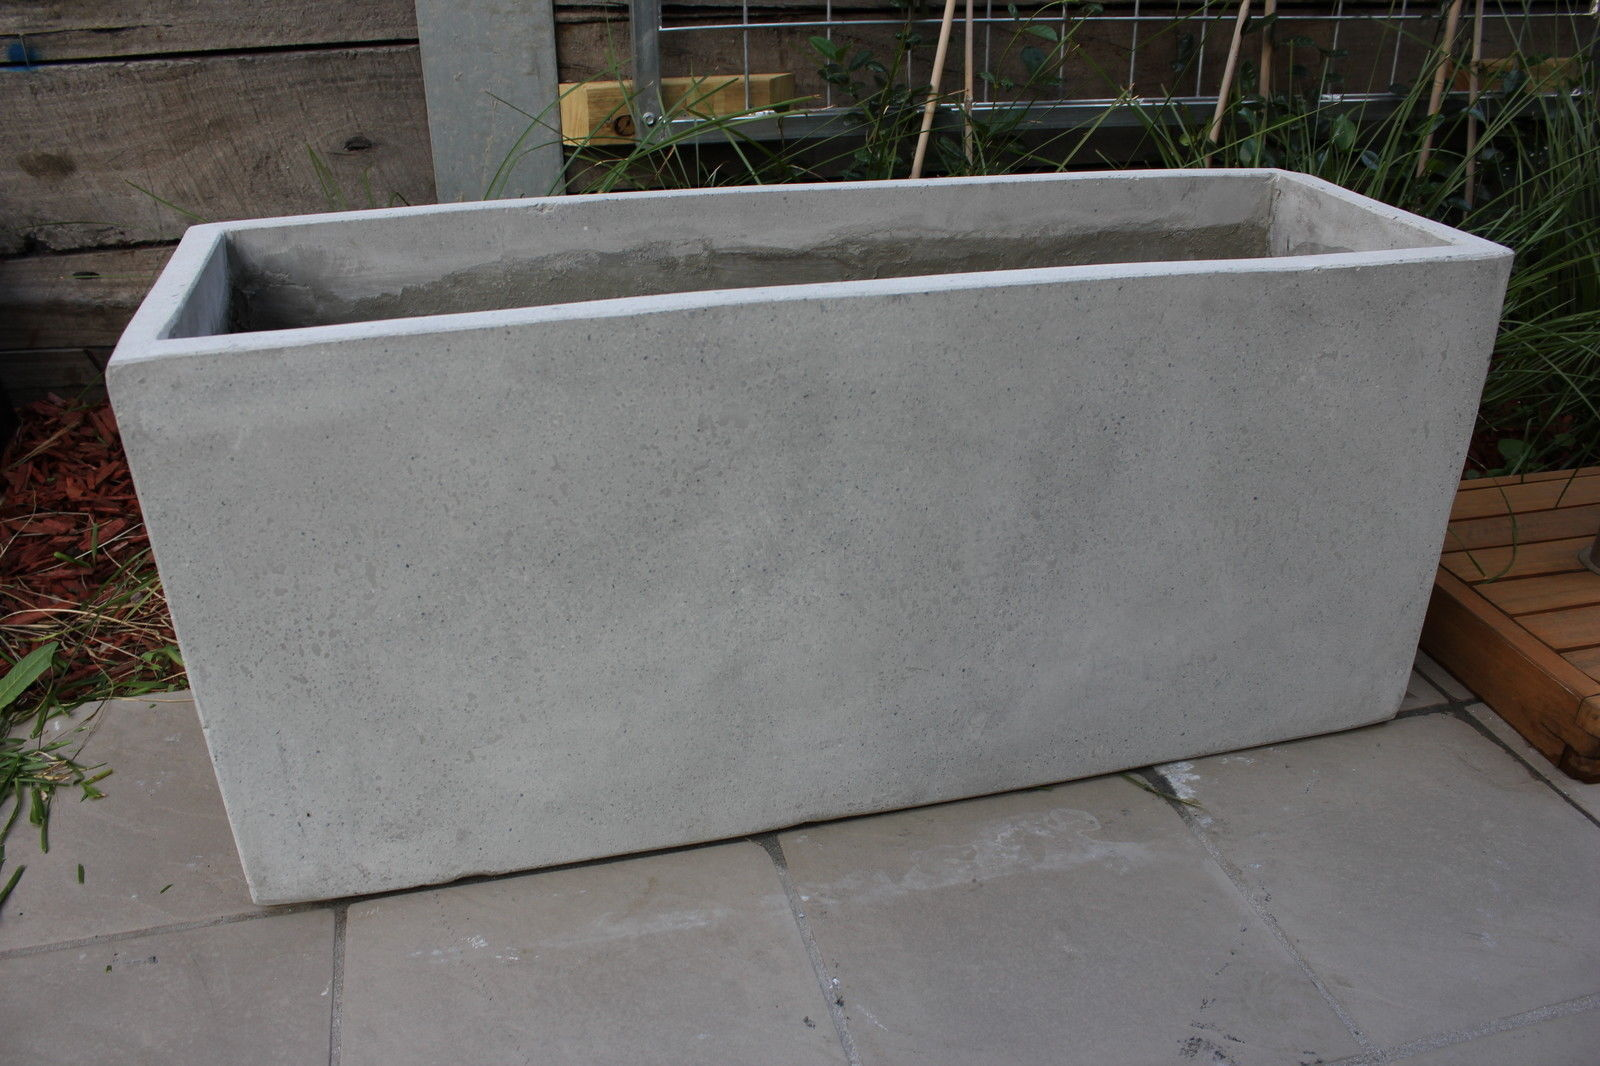 Garden Pots Batch Of 6 X 100cm Long Light Weight Concrete: concrete planters